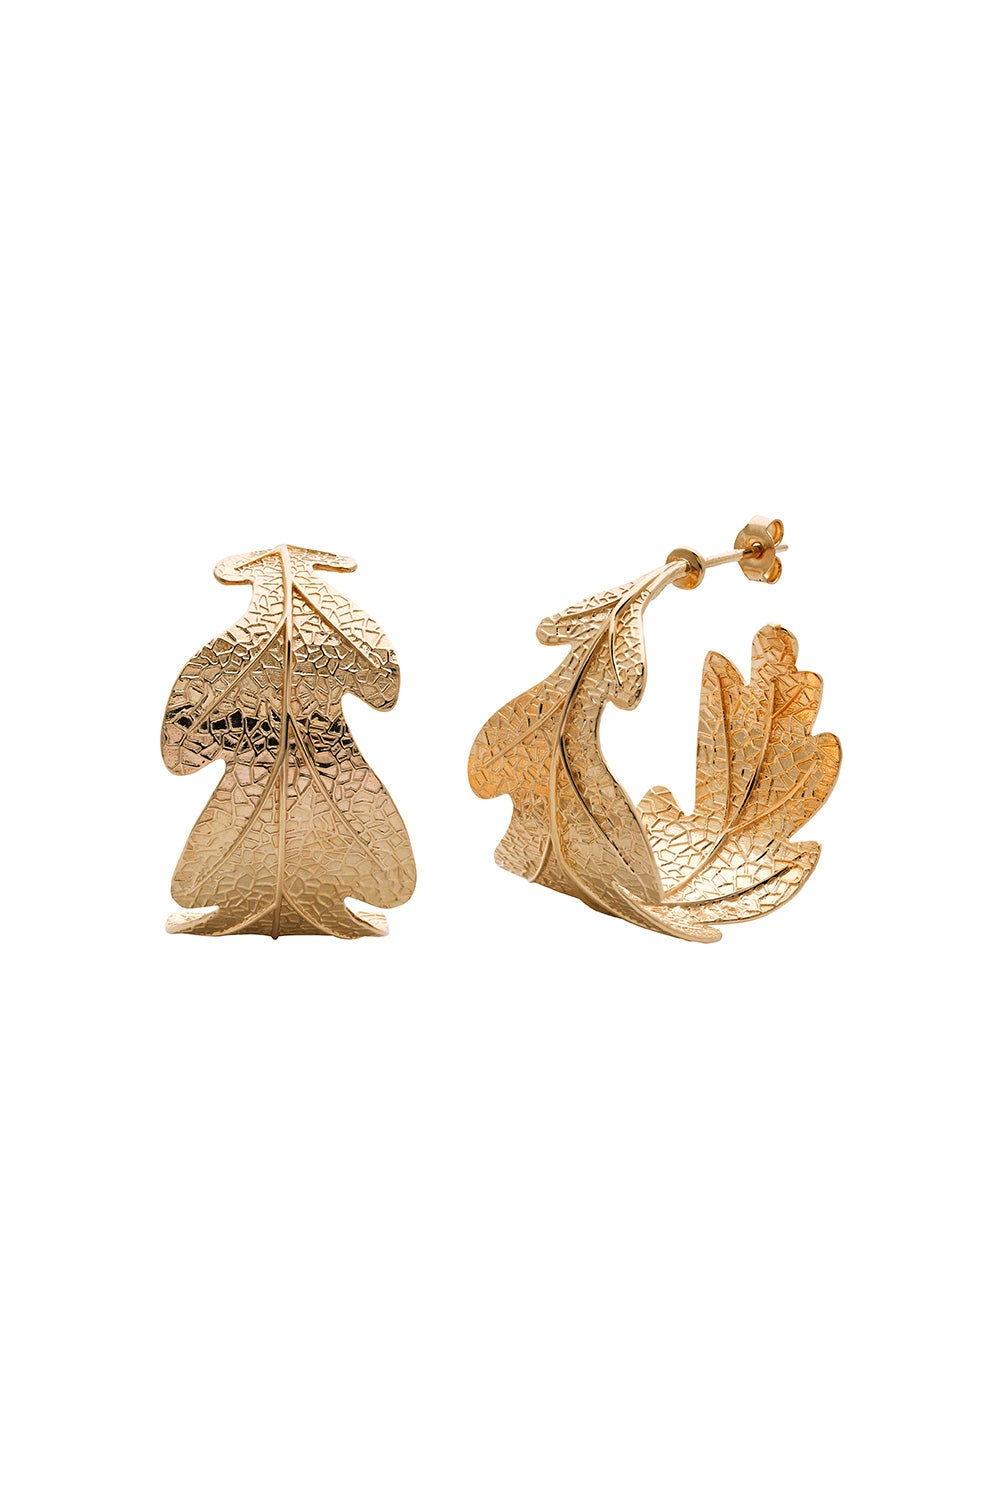 Oak Leaf Earrings Gold